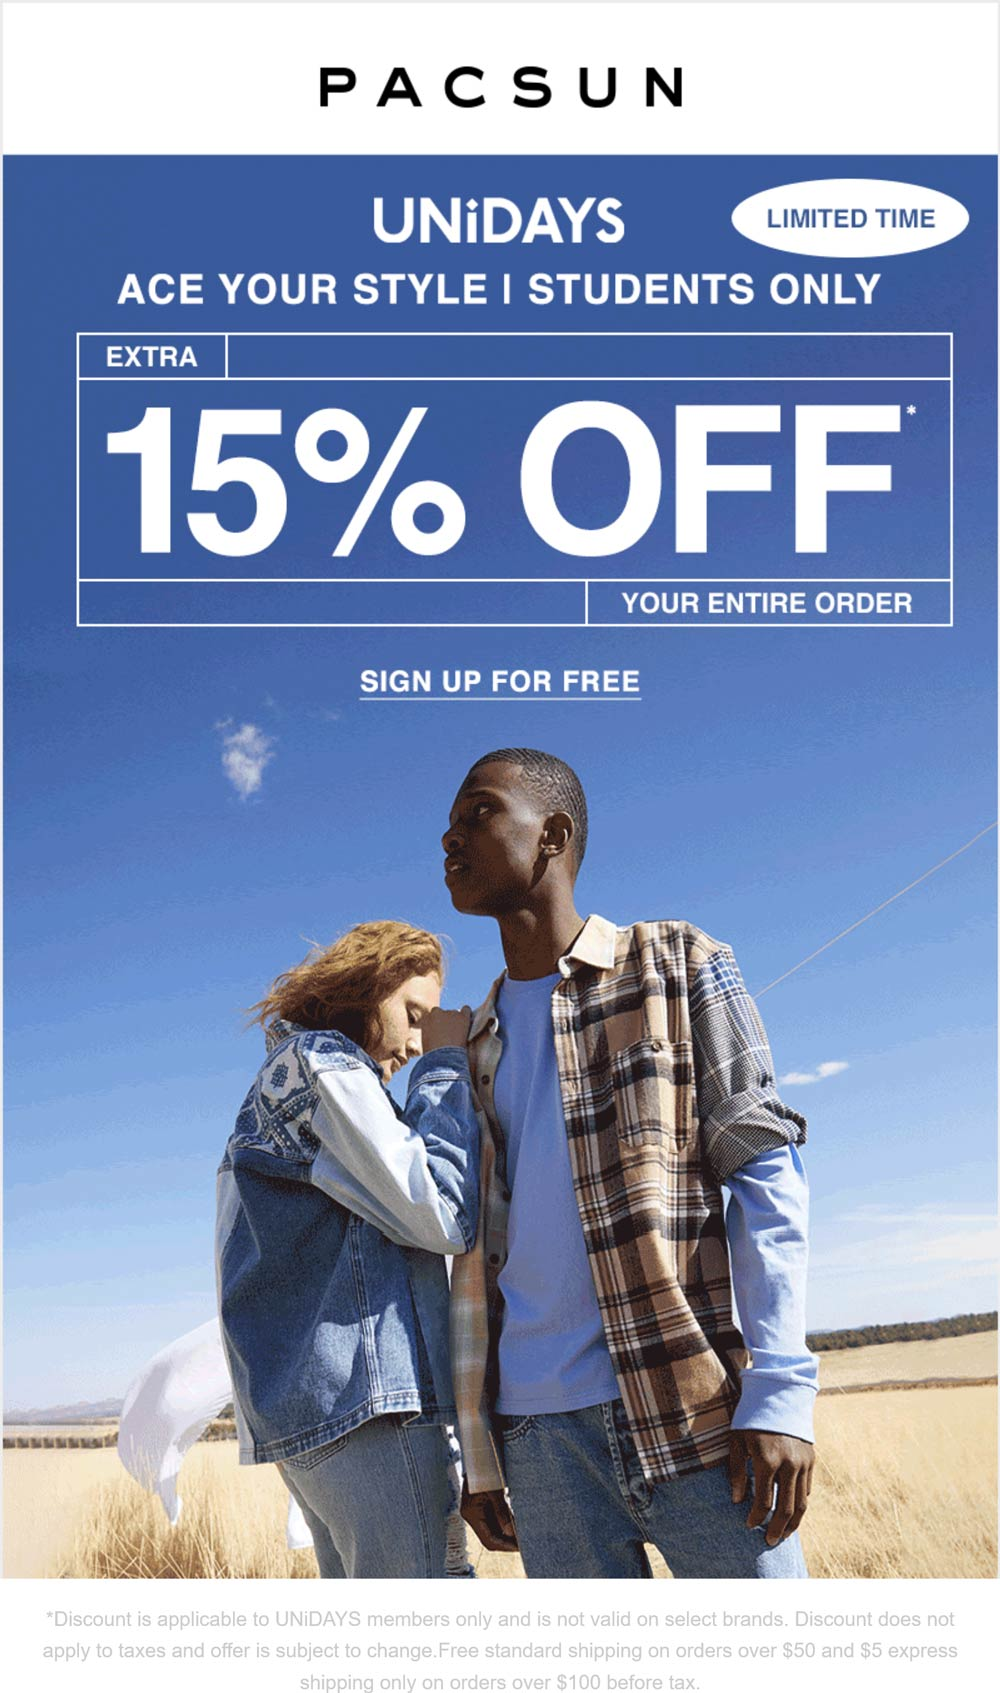 Pacsun stores Coupon  Extra 15% off for UNiDAYS members at Pacsun #pacsun